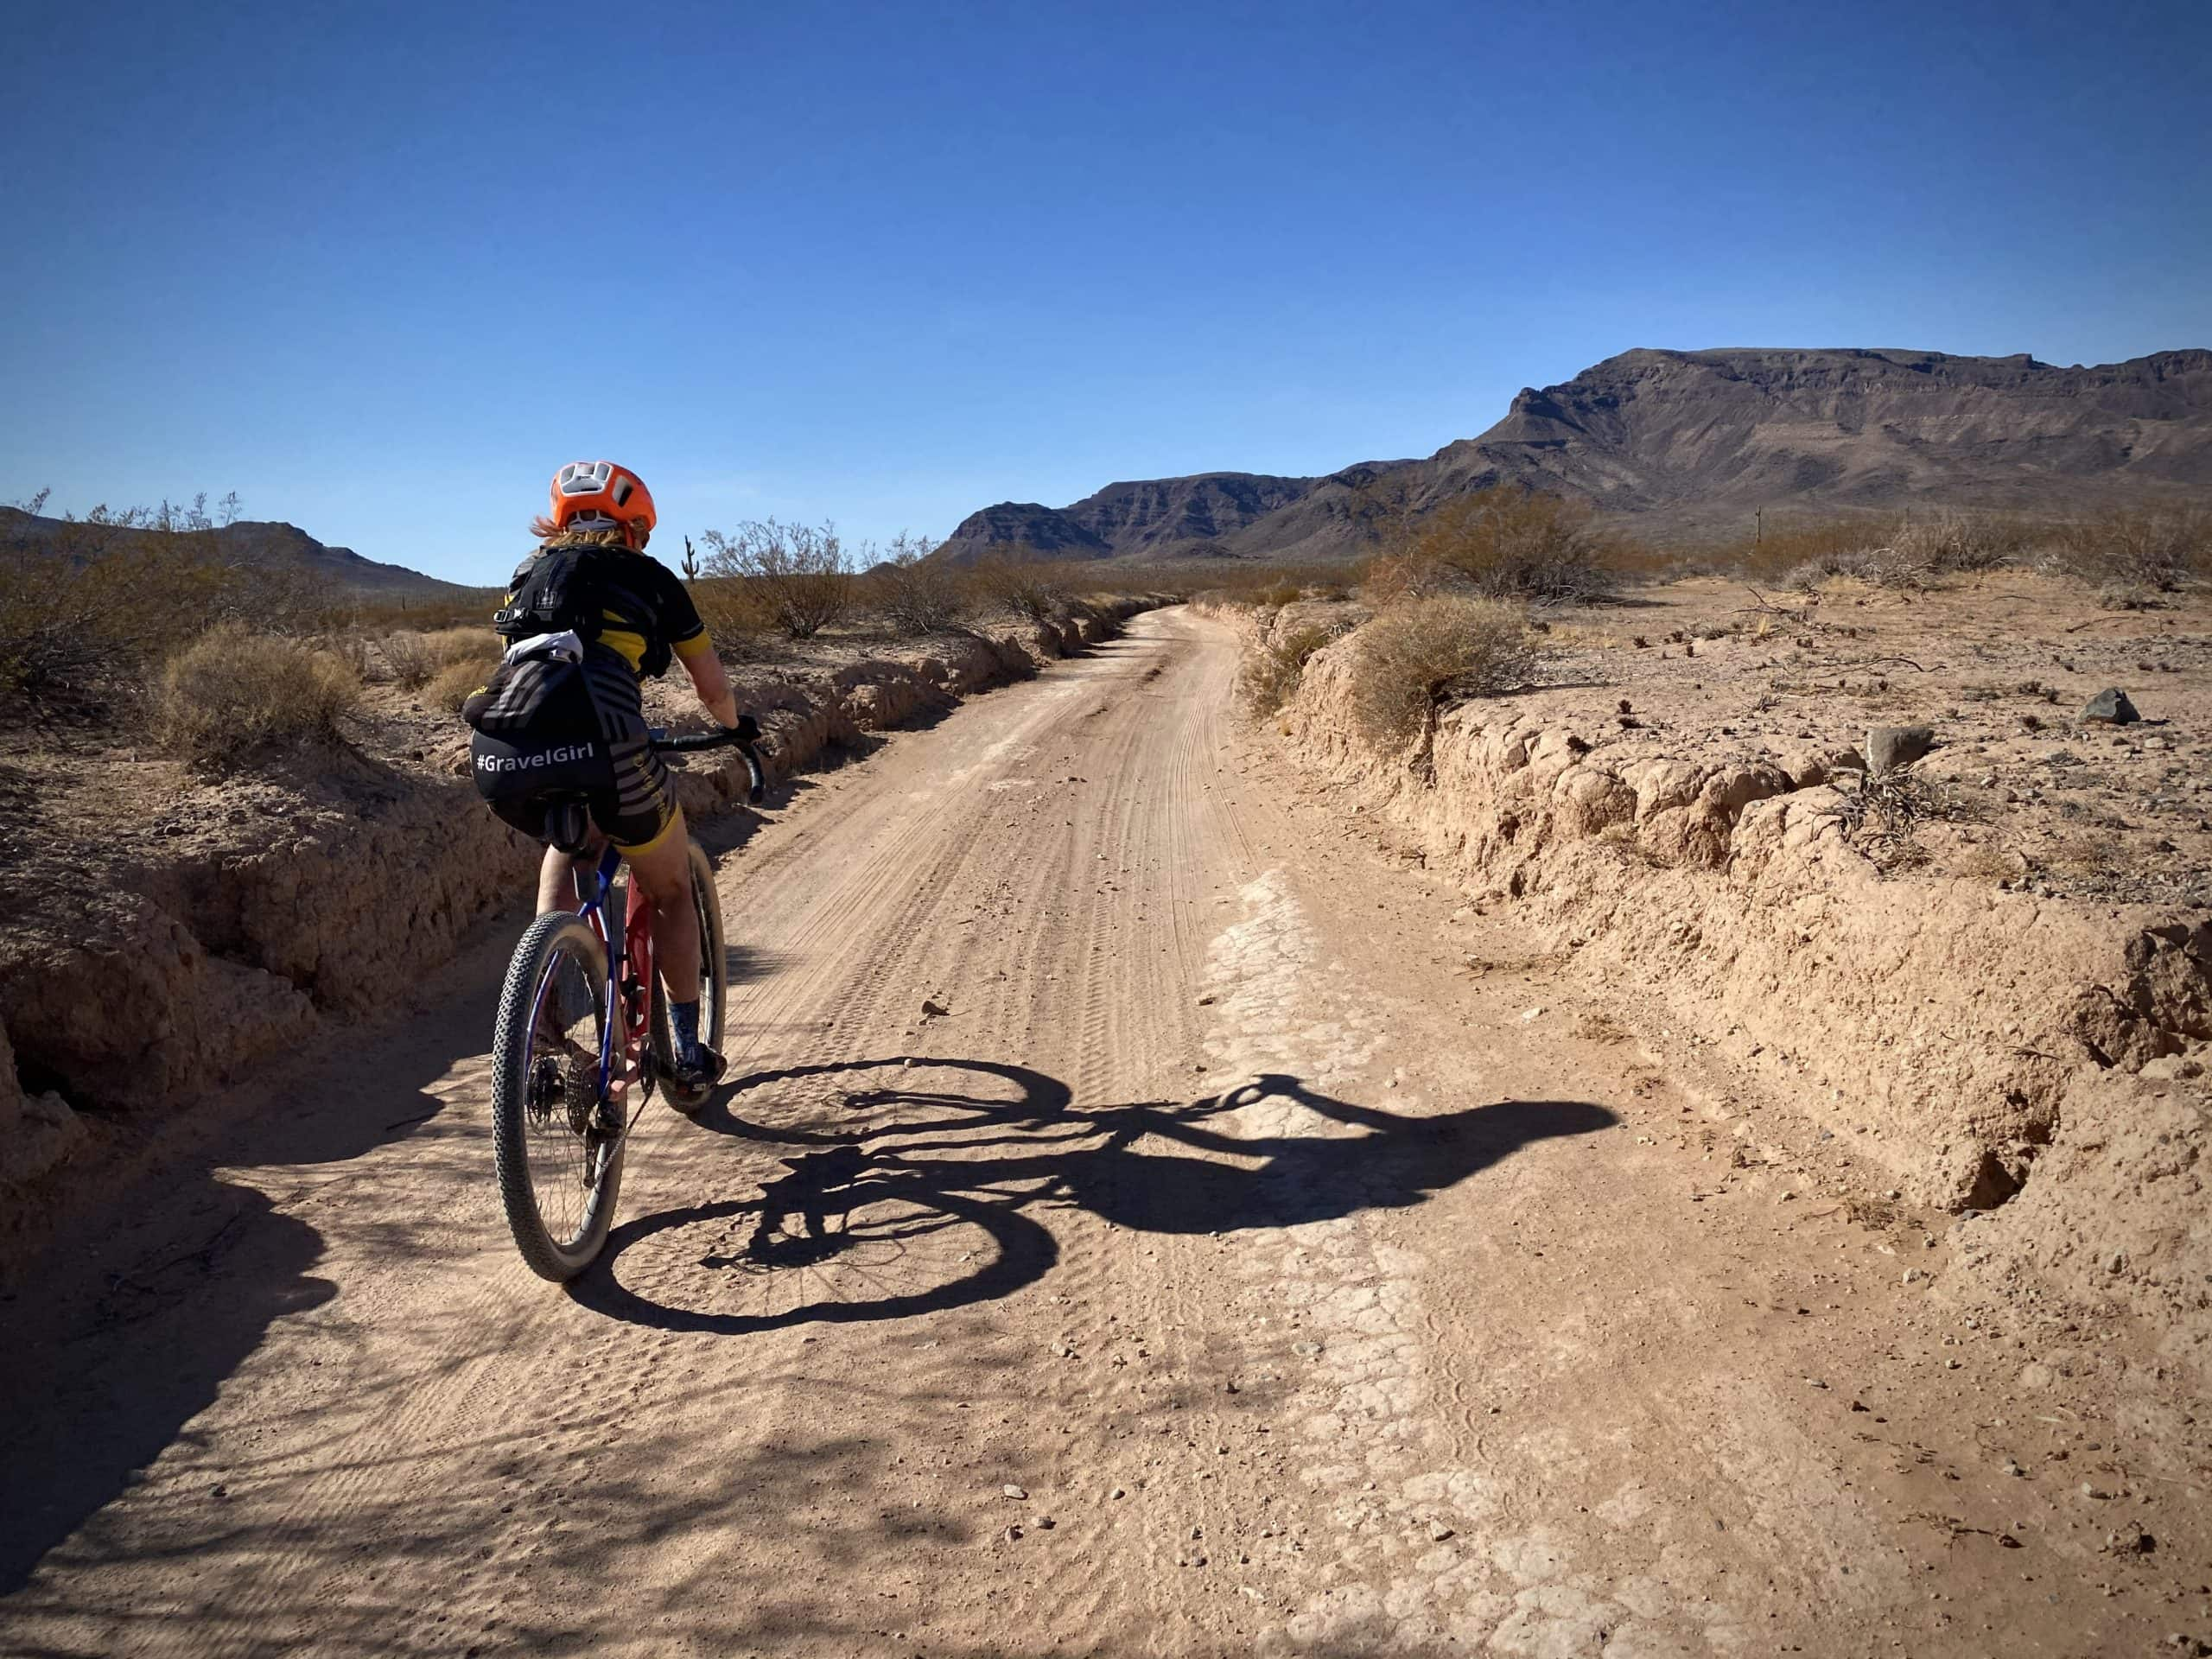 Cyclist in deep gorged gravel road section in Cabeza Prieta NWR.